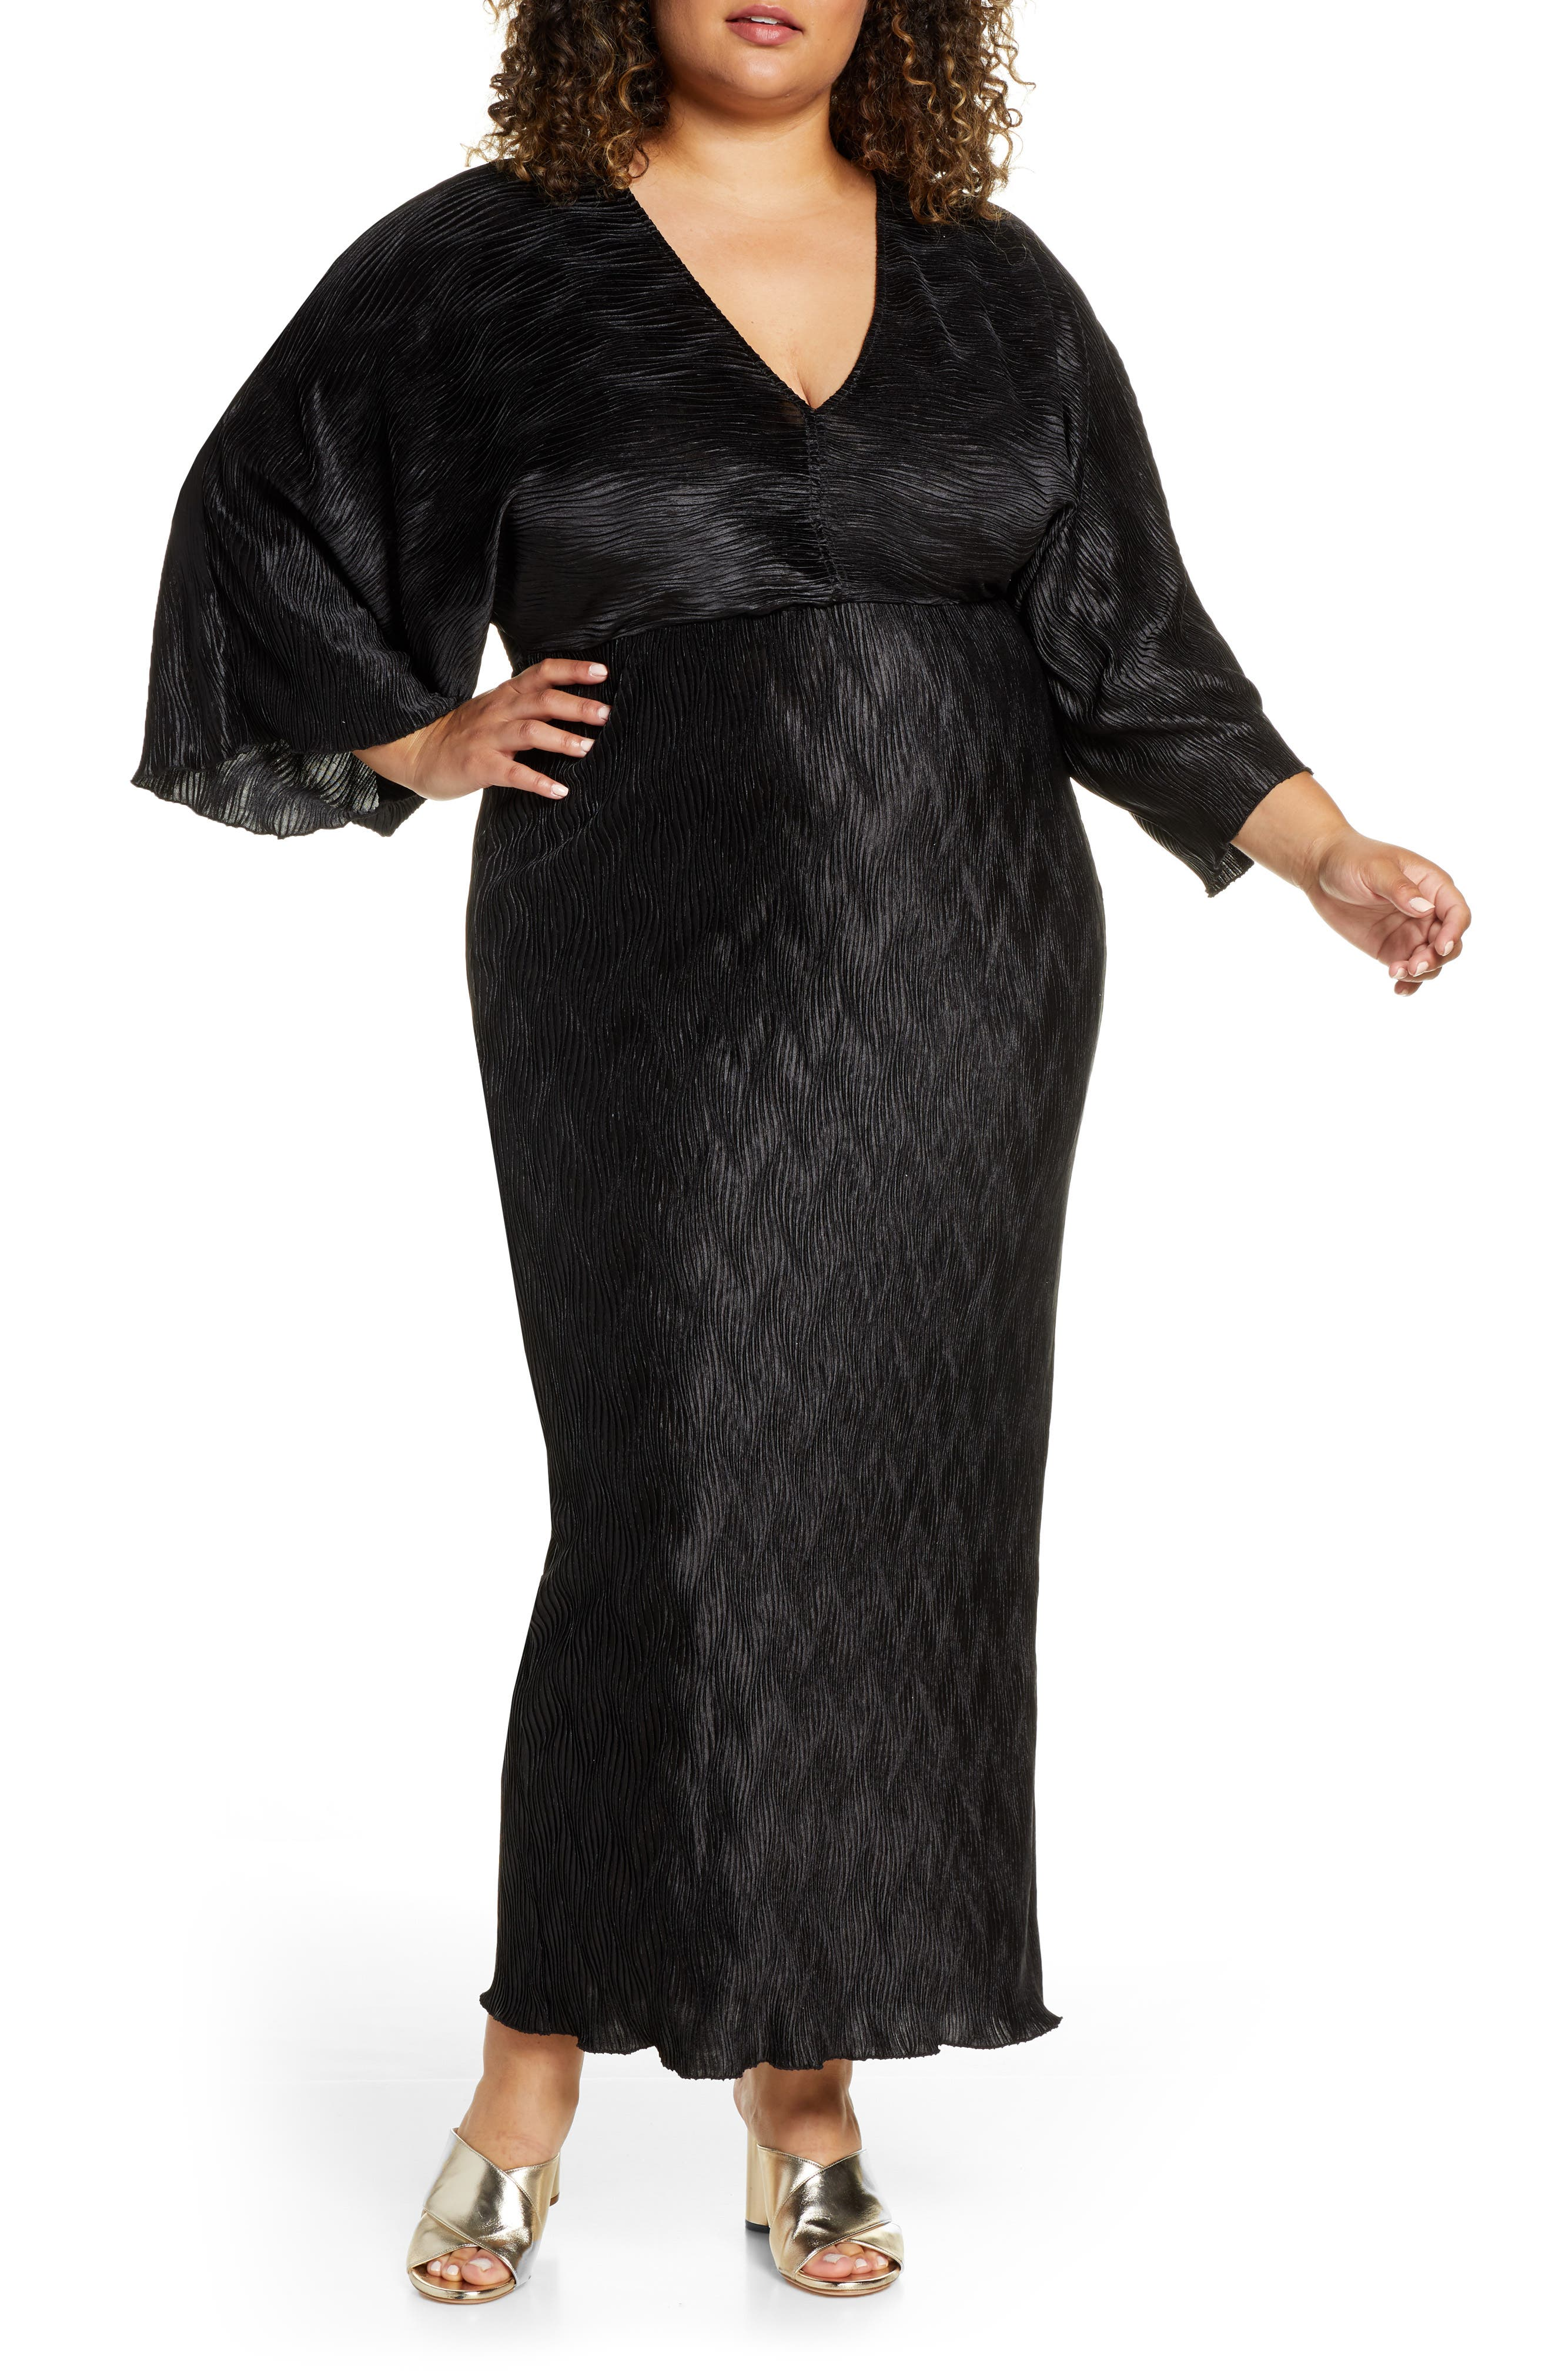 60s 70s Plus Size Dresses, Clothing, Costumes Plus Size Womens Eloquii Textured Long Sleeve Maxi Dress $99.95 AT vintagedancer.com